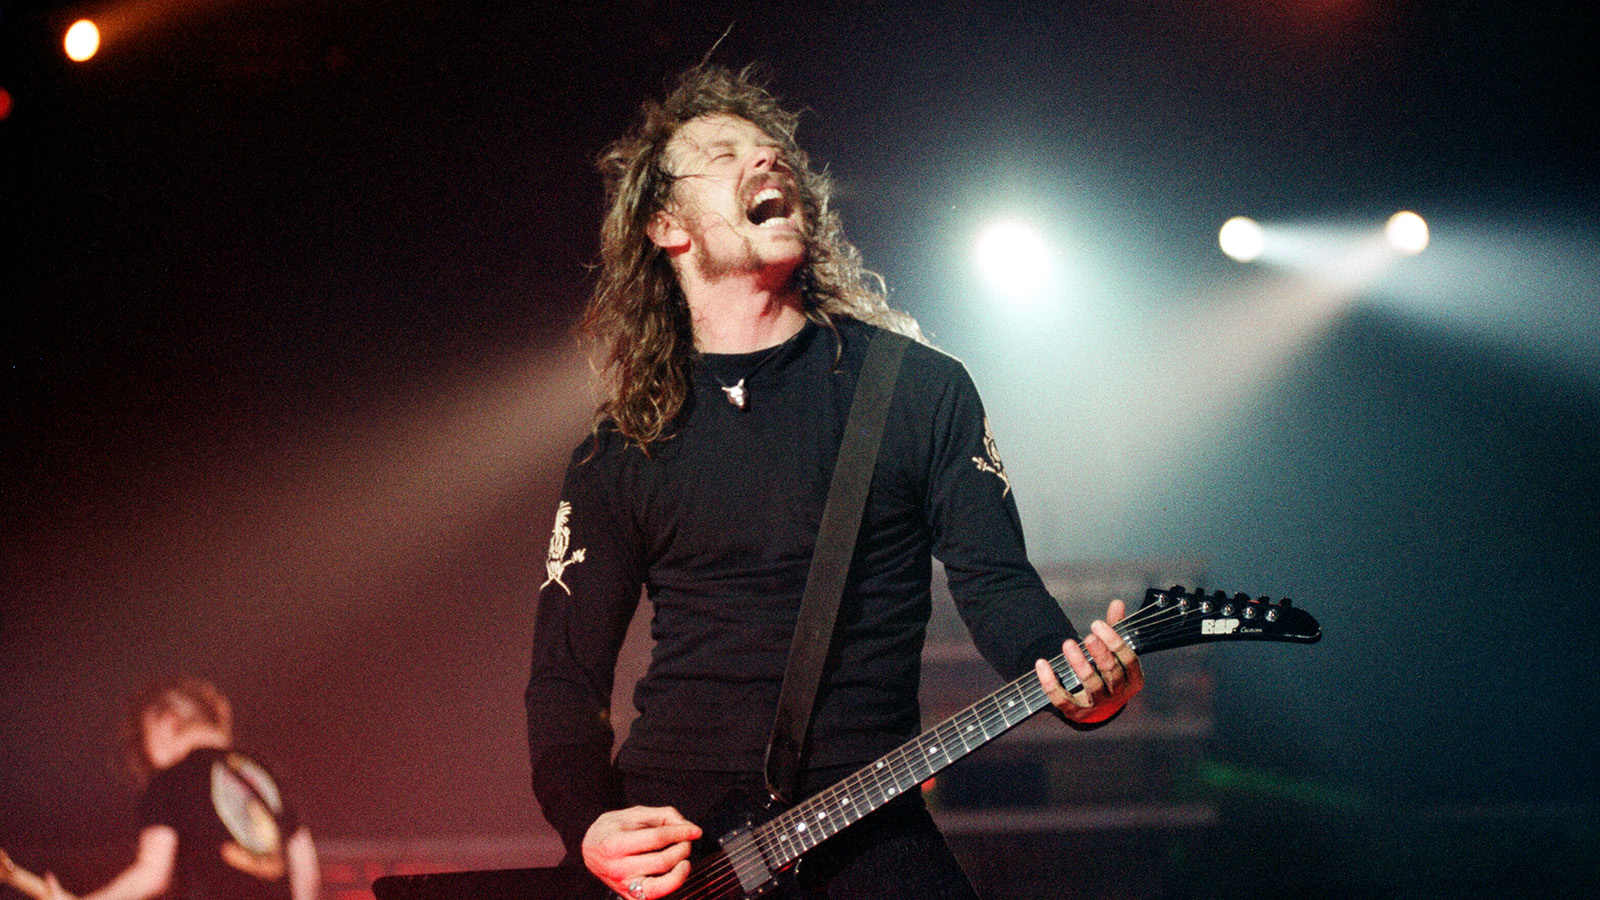 James Hetfield en vivo durante los 90s